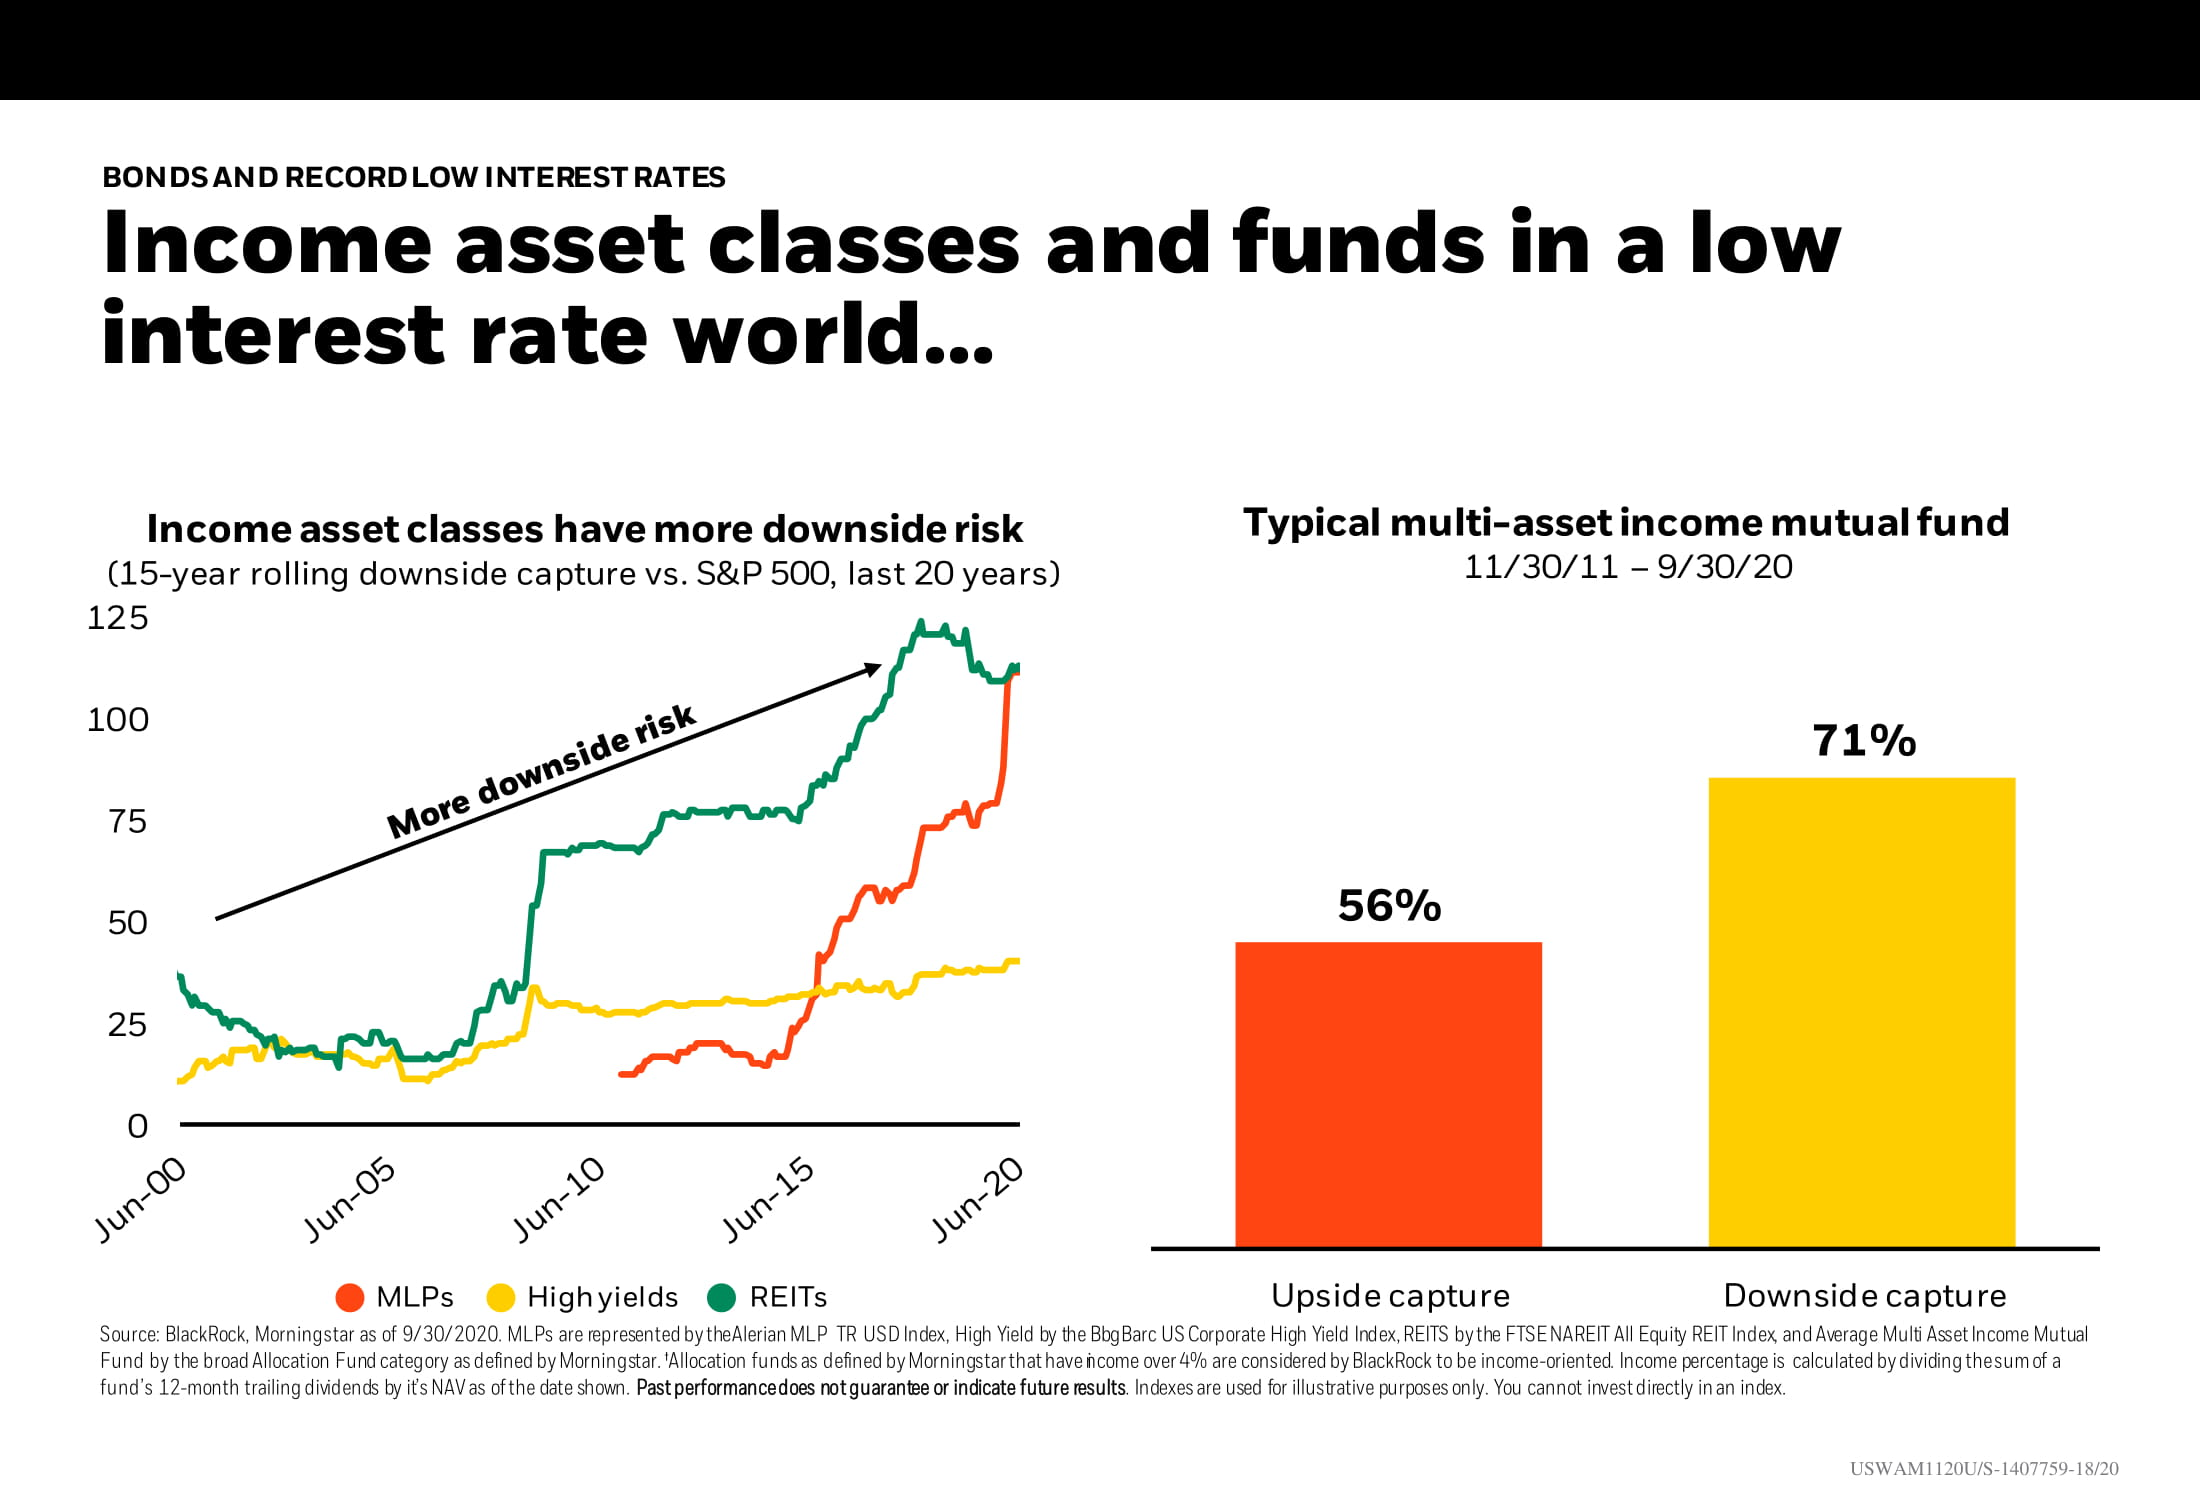 Income asset classes and funds in a low interest rate world…Chart